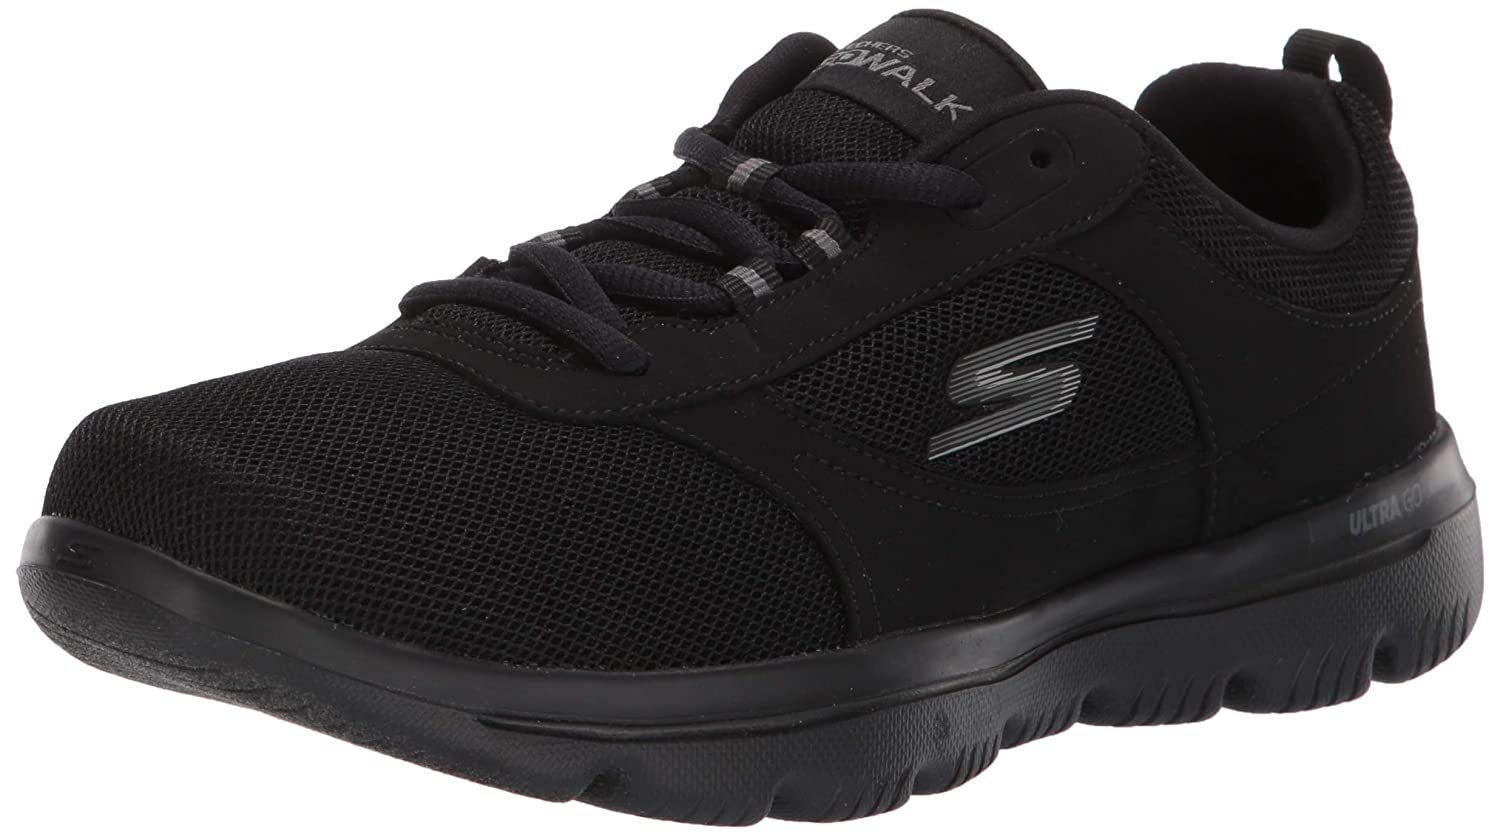 Skechers15734 - Go Walk Evolution Ultra - Schwarz Enhance Damen Schwarz - (schwarz) 40 M EU f8fae7